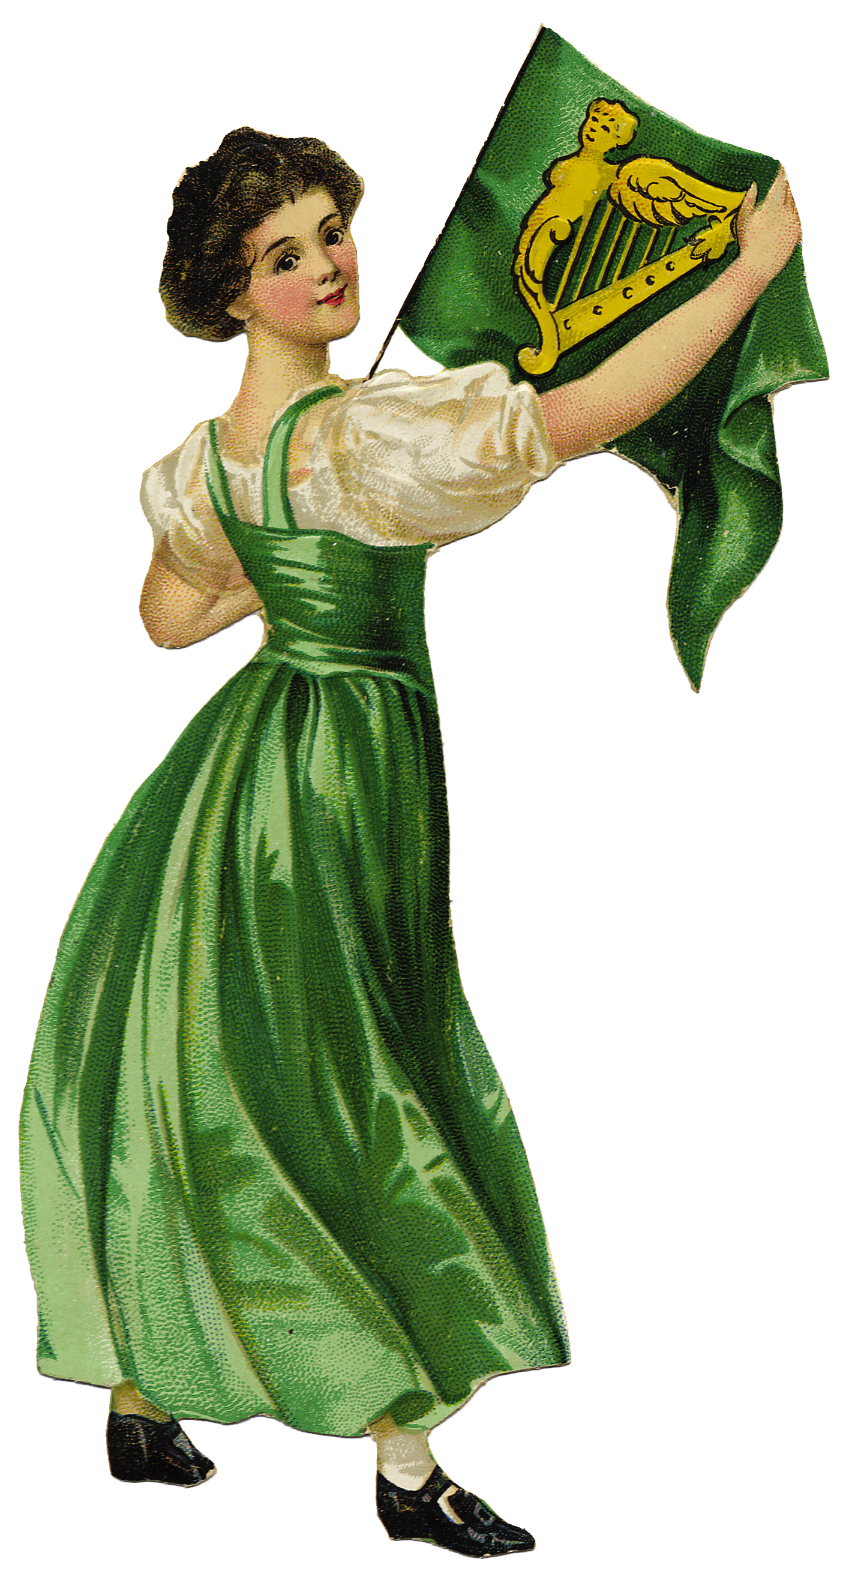 Free Graphic of The Day Irish Lassie for St. Patrick's Day